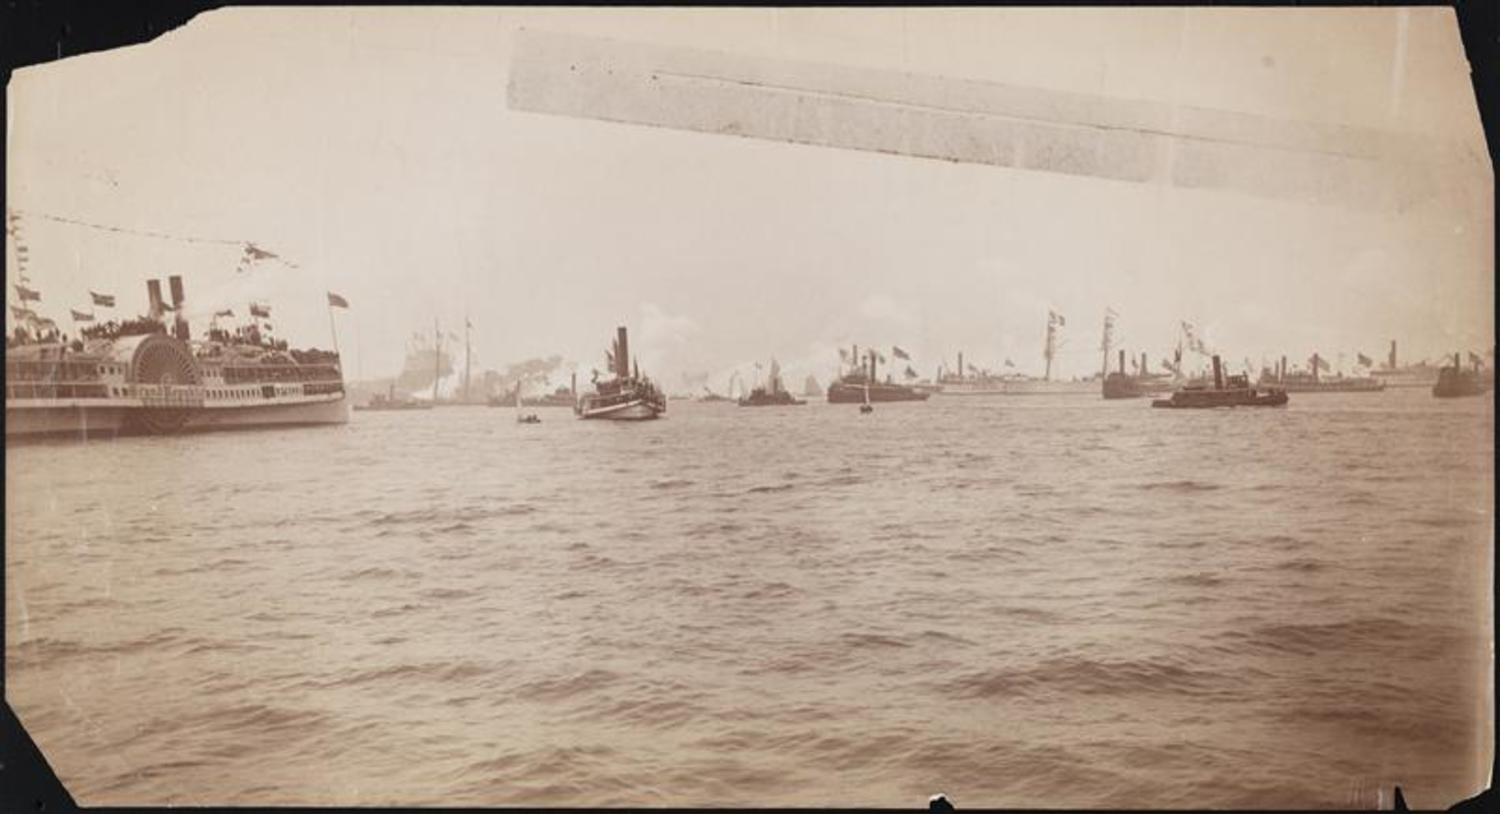 Arrival in New York Harbor of the Statue of Liberty, 1885.